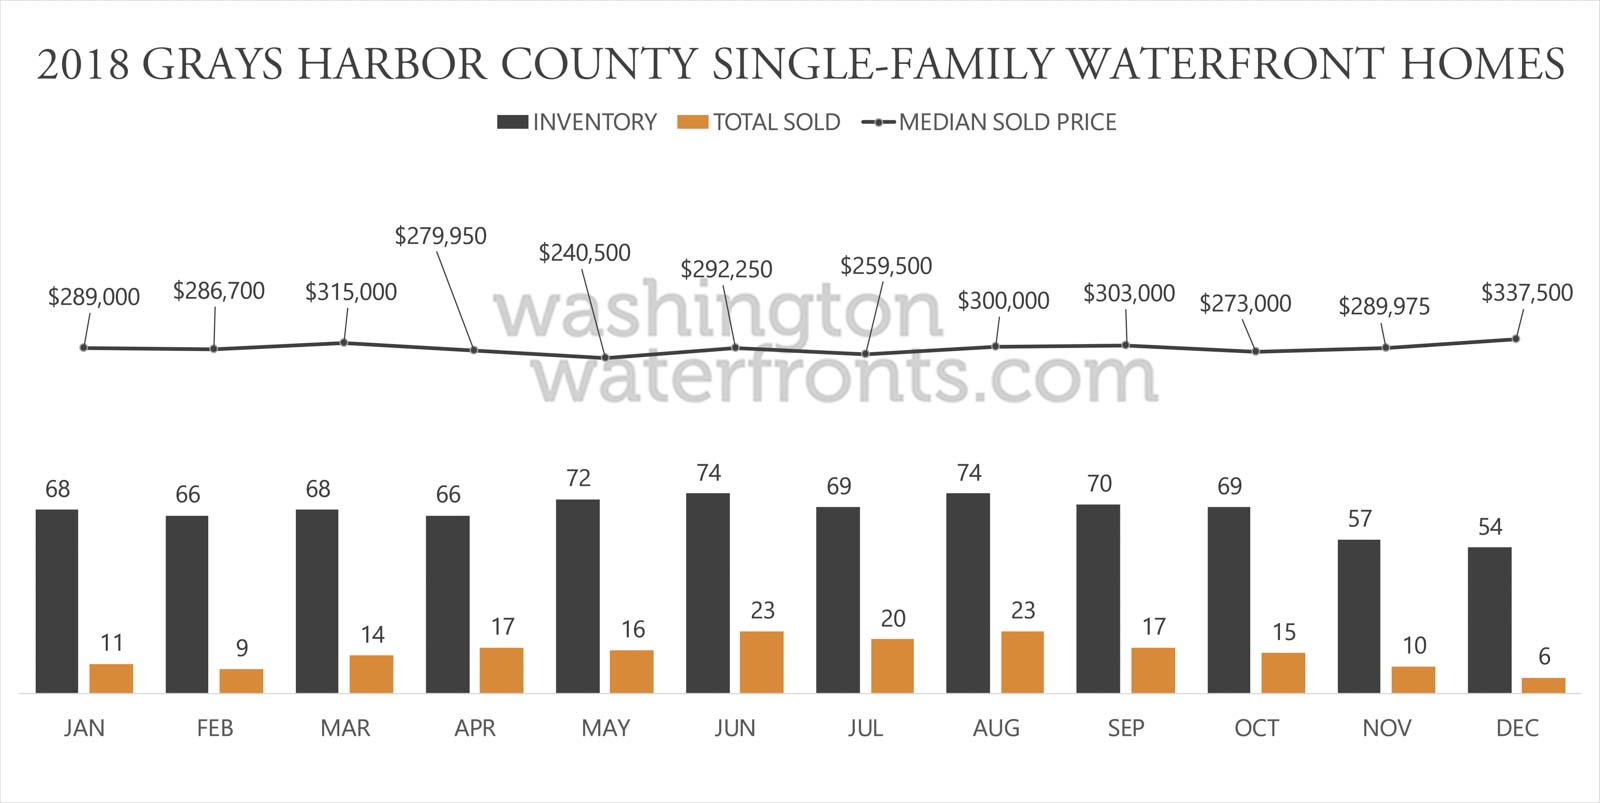 Grays Harbor Waterfront County Inventory